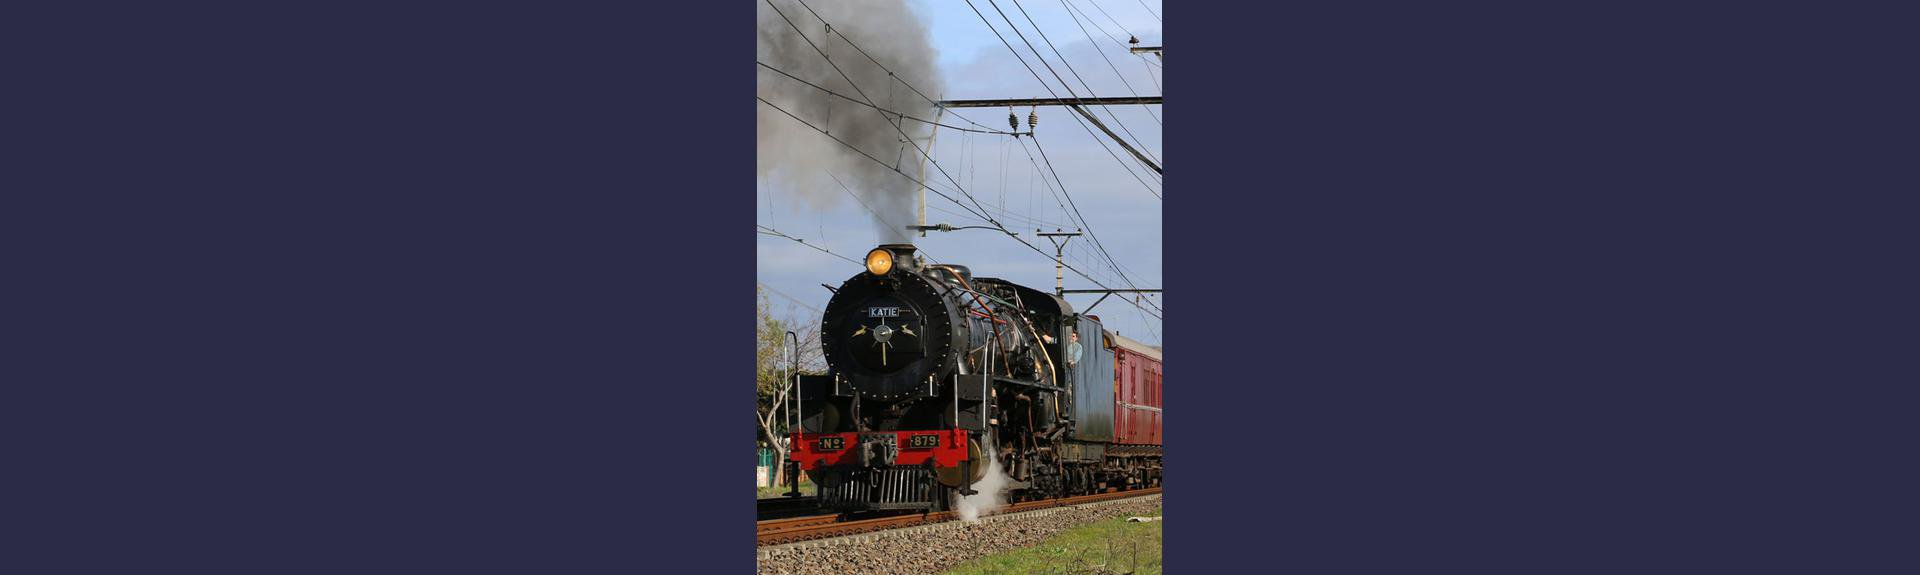 Steam train trips in Cape Town to experience a bygone era!